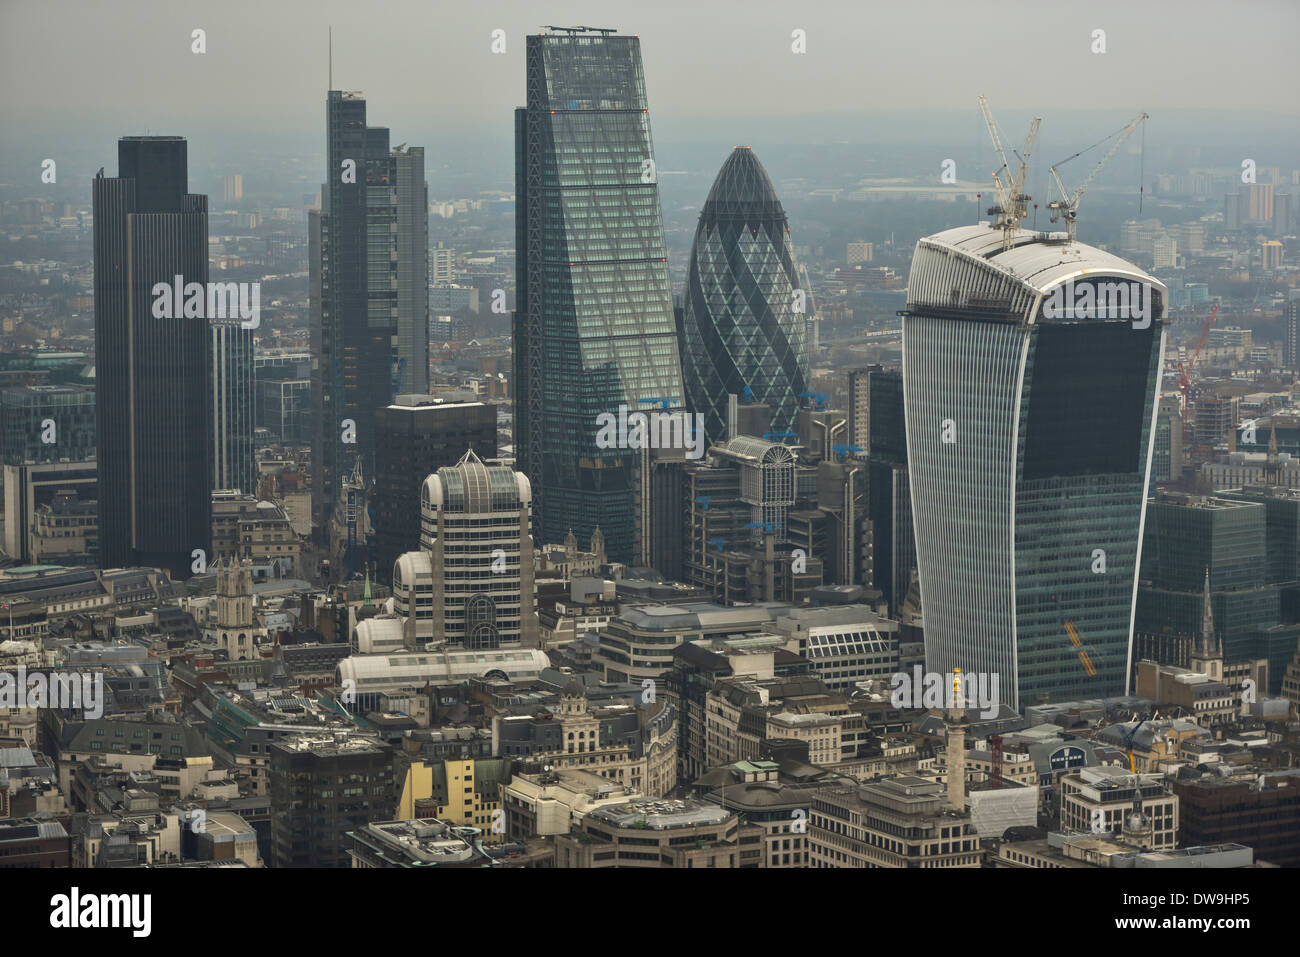 Aerial Photograph showing the high-rise buildings of the Square Mile in London - Stock Image